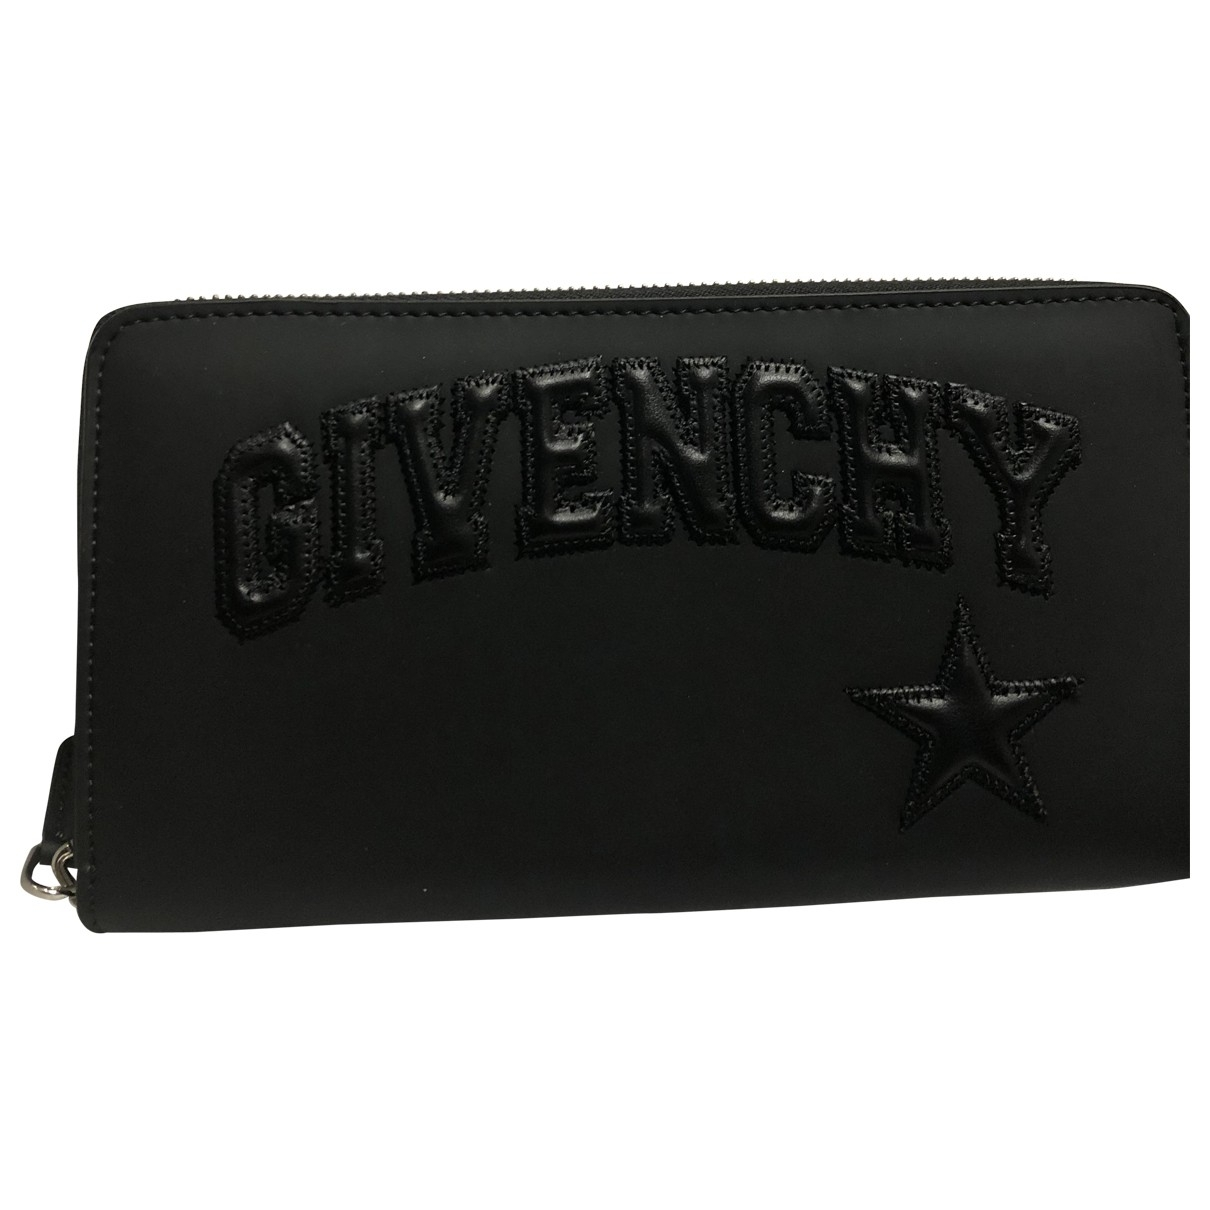 Givenchy \N Black wallet for Women \N